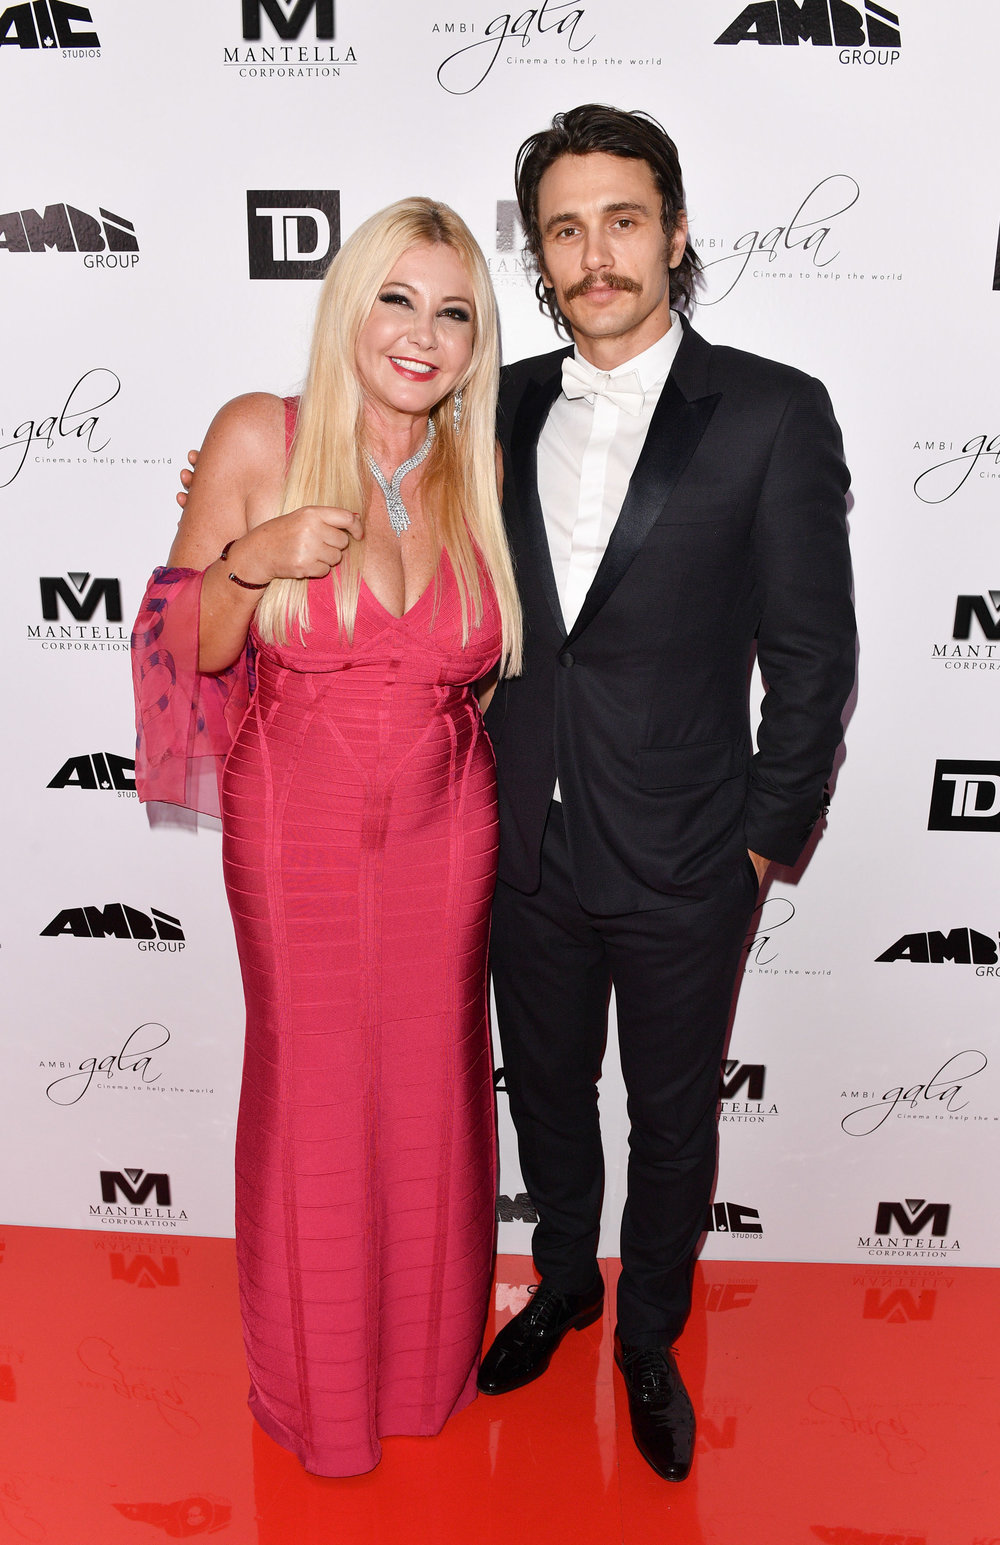 Monika Bacardi and co-chair James Franco on the red carpet for AMBI Gala 2016